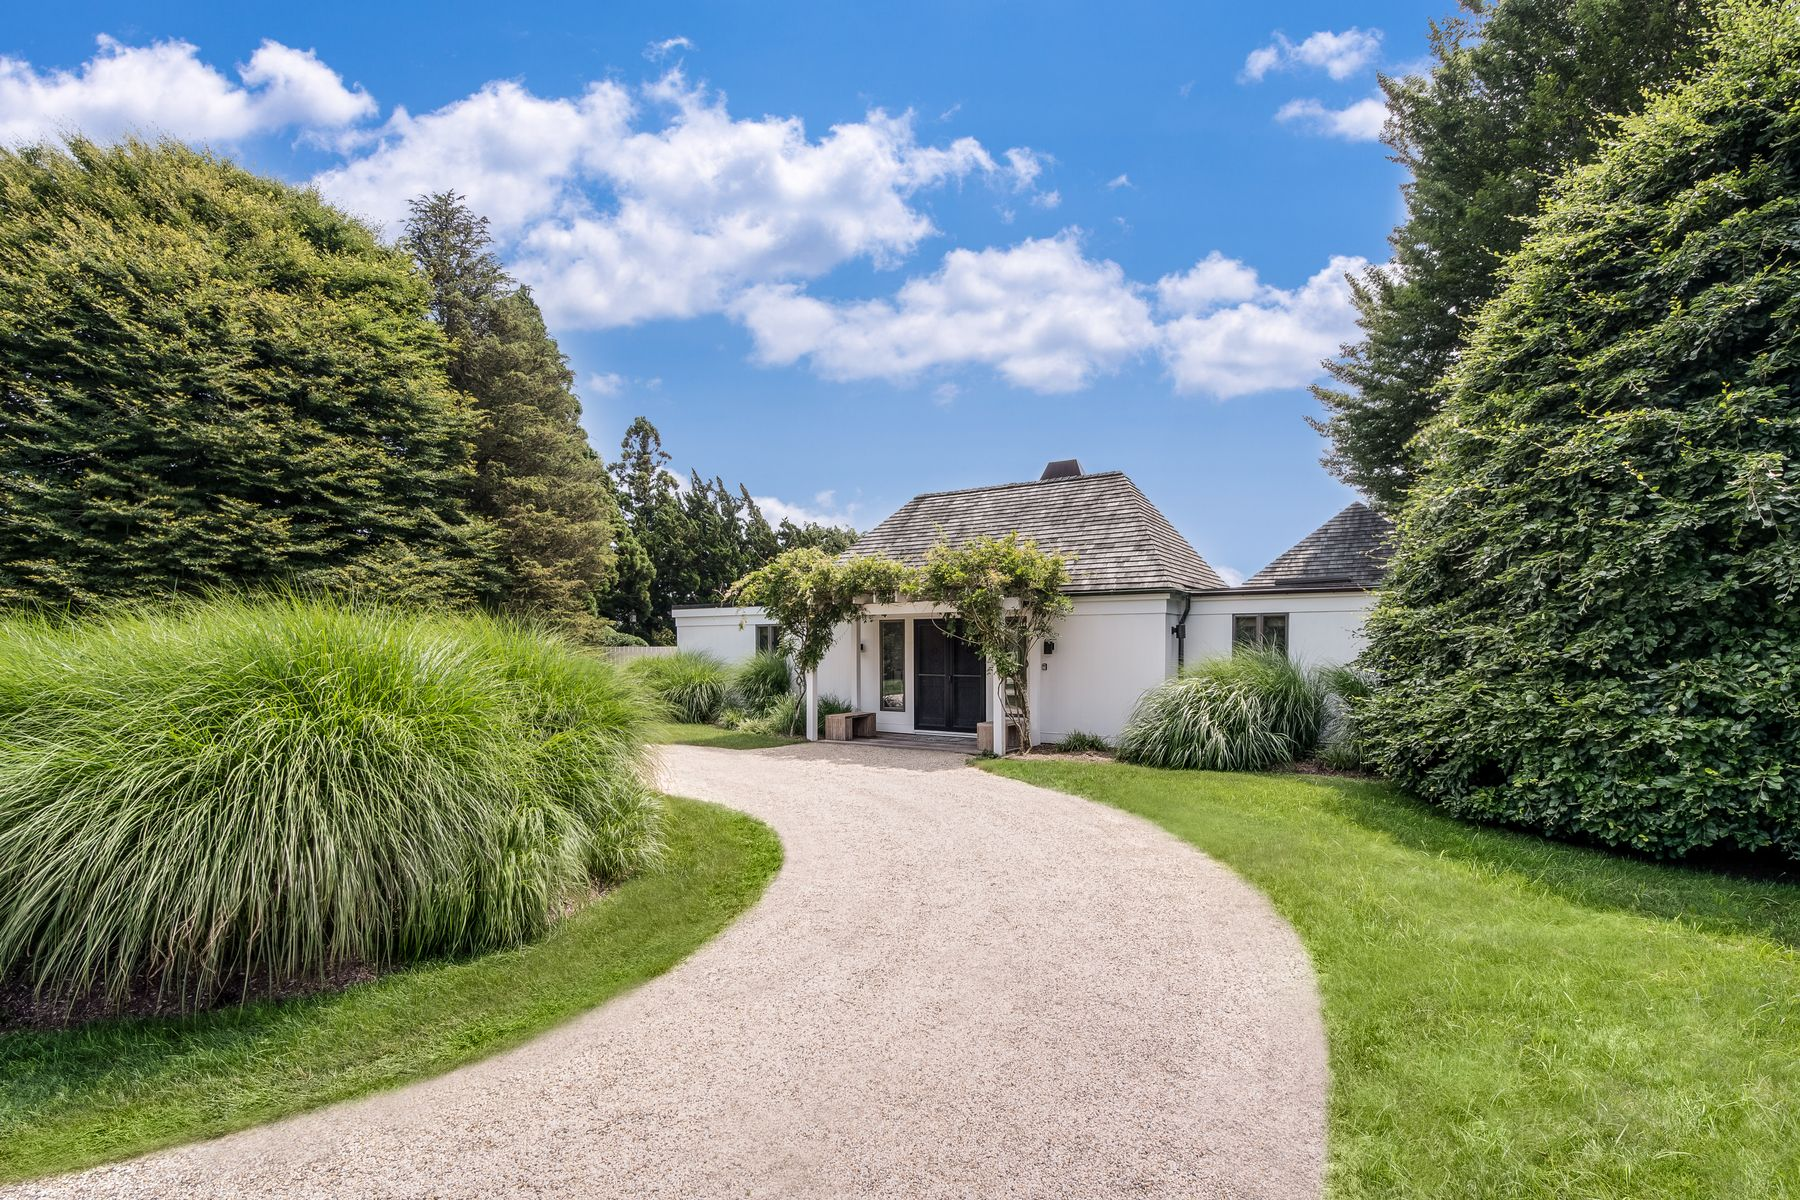 Single Family Homes for Active at Overlooking Reserve In Sagaponack 627 Sagaponack Road Sagaponack, New York 11962 United States